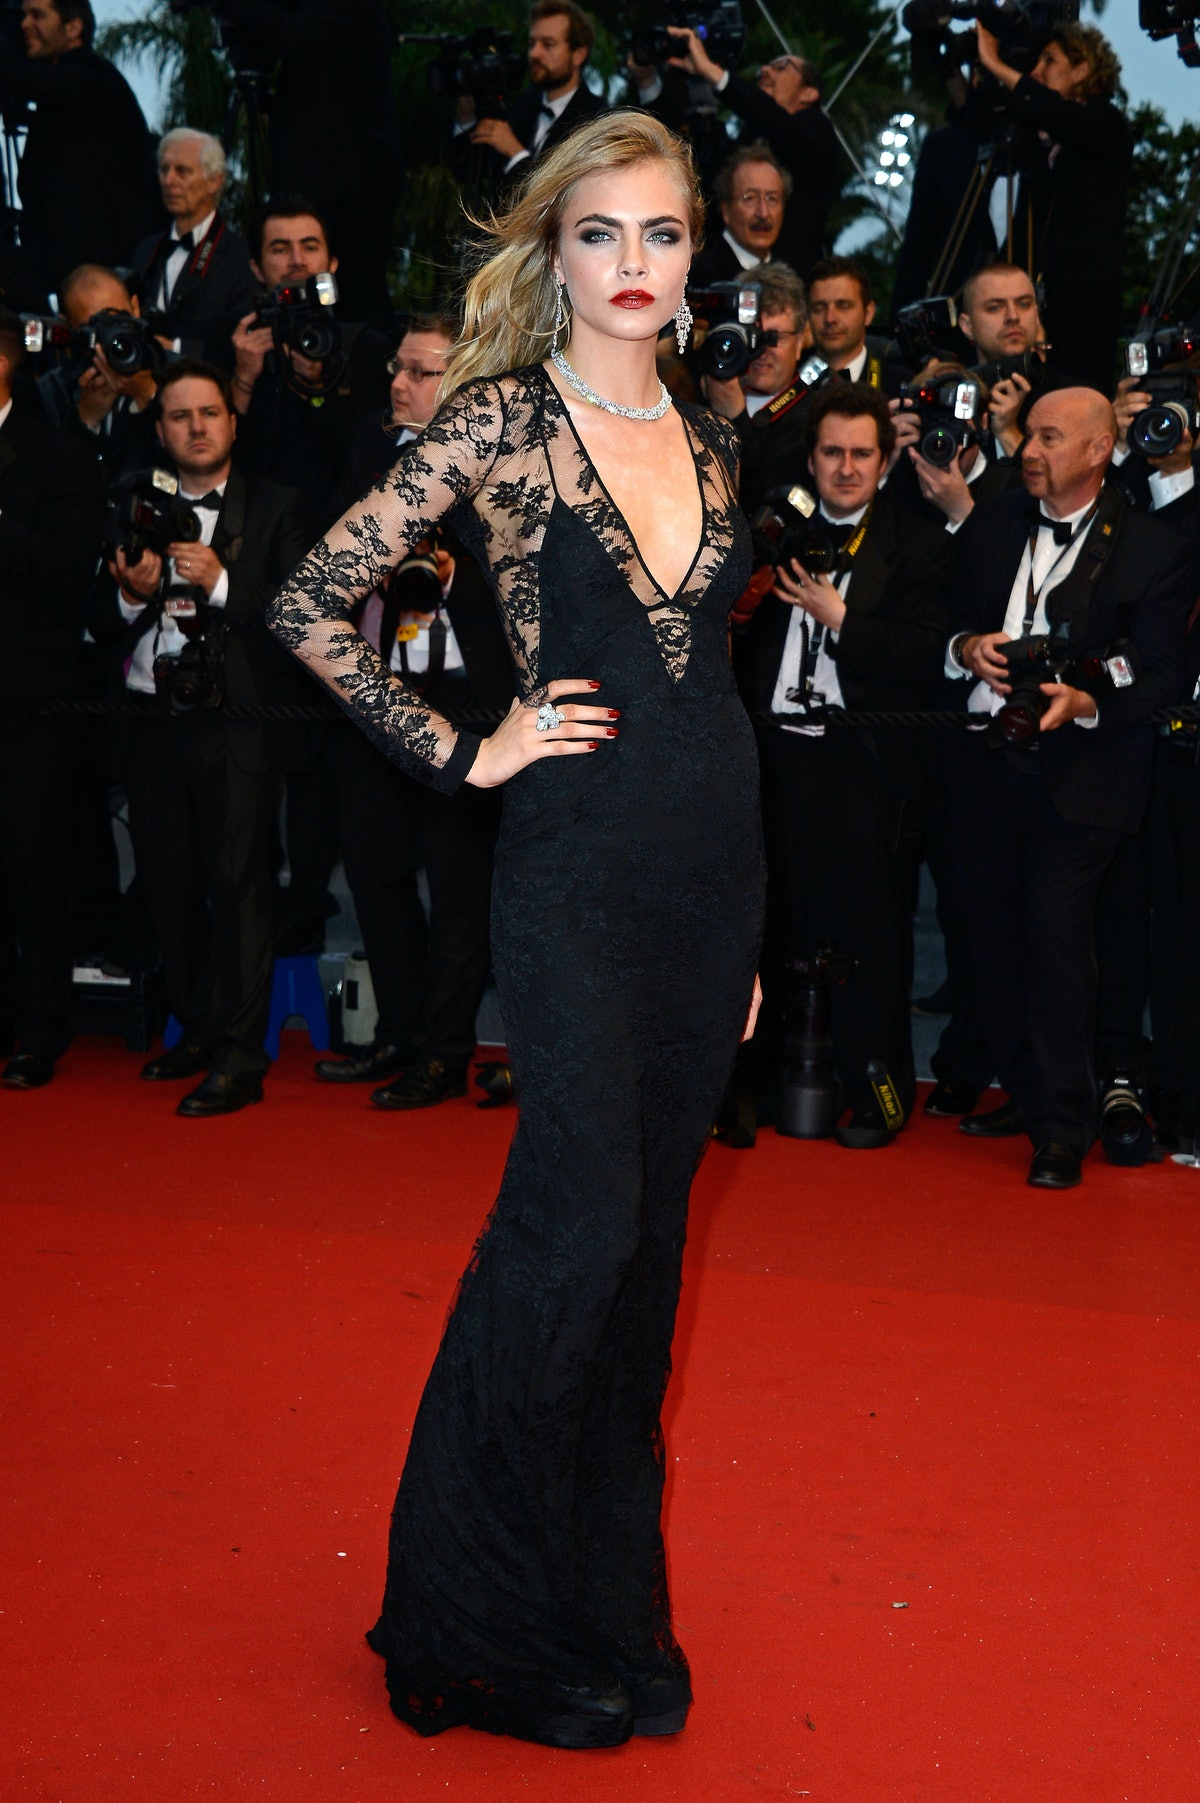 Cara Delevingne in Cannes